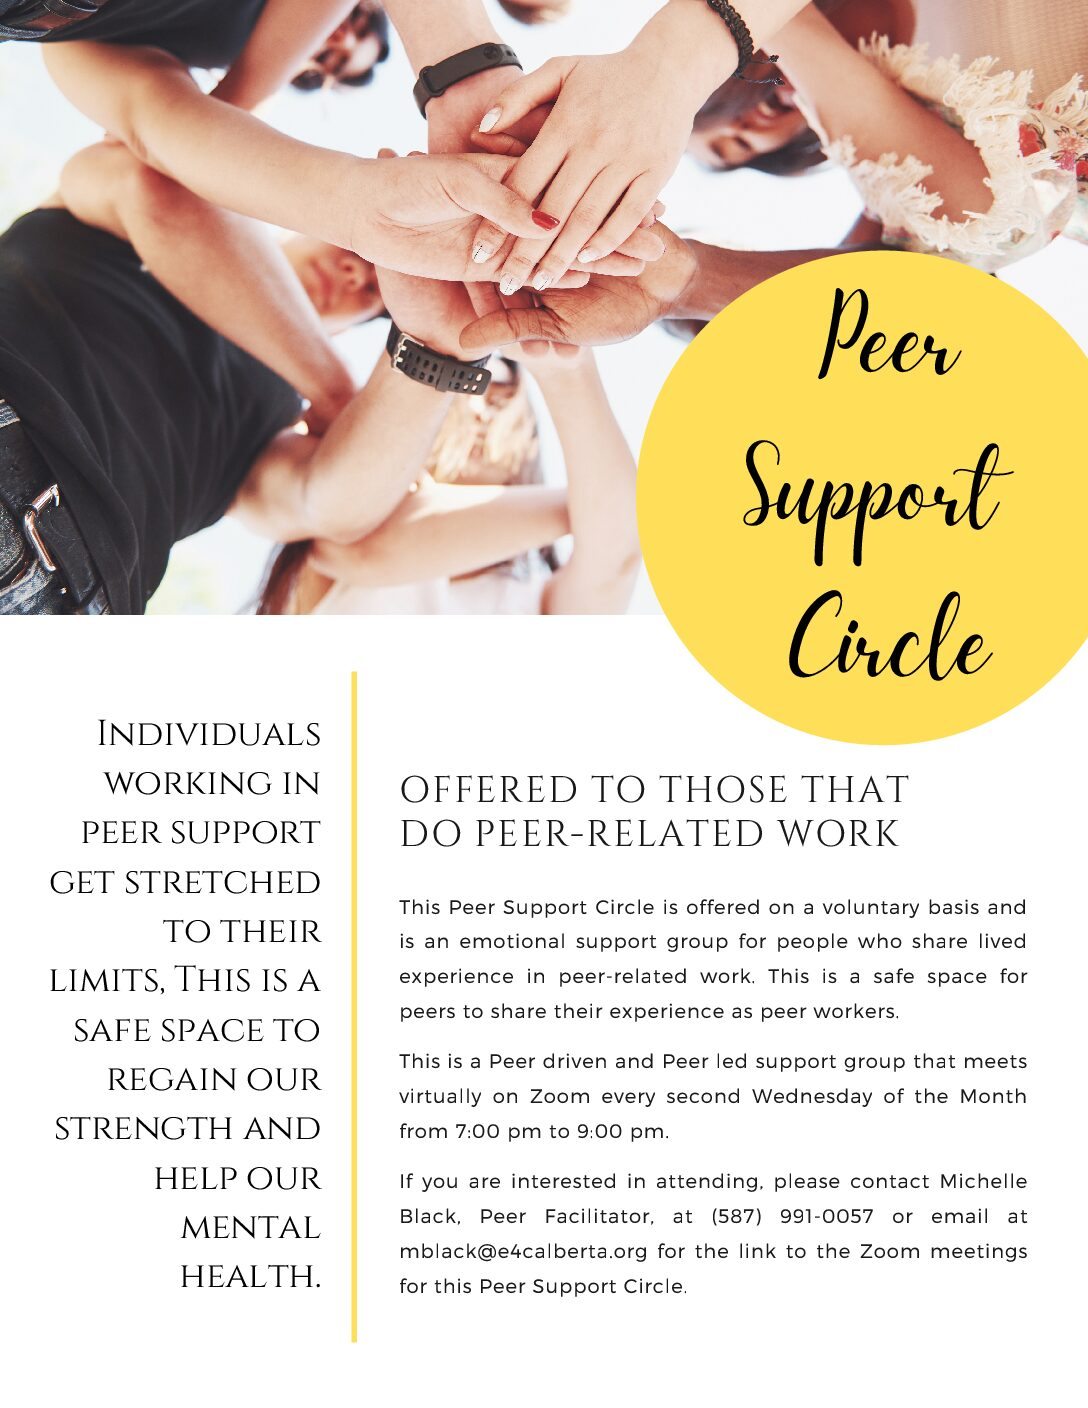 Peer Support Circle